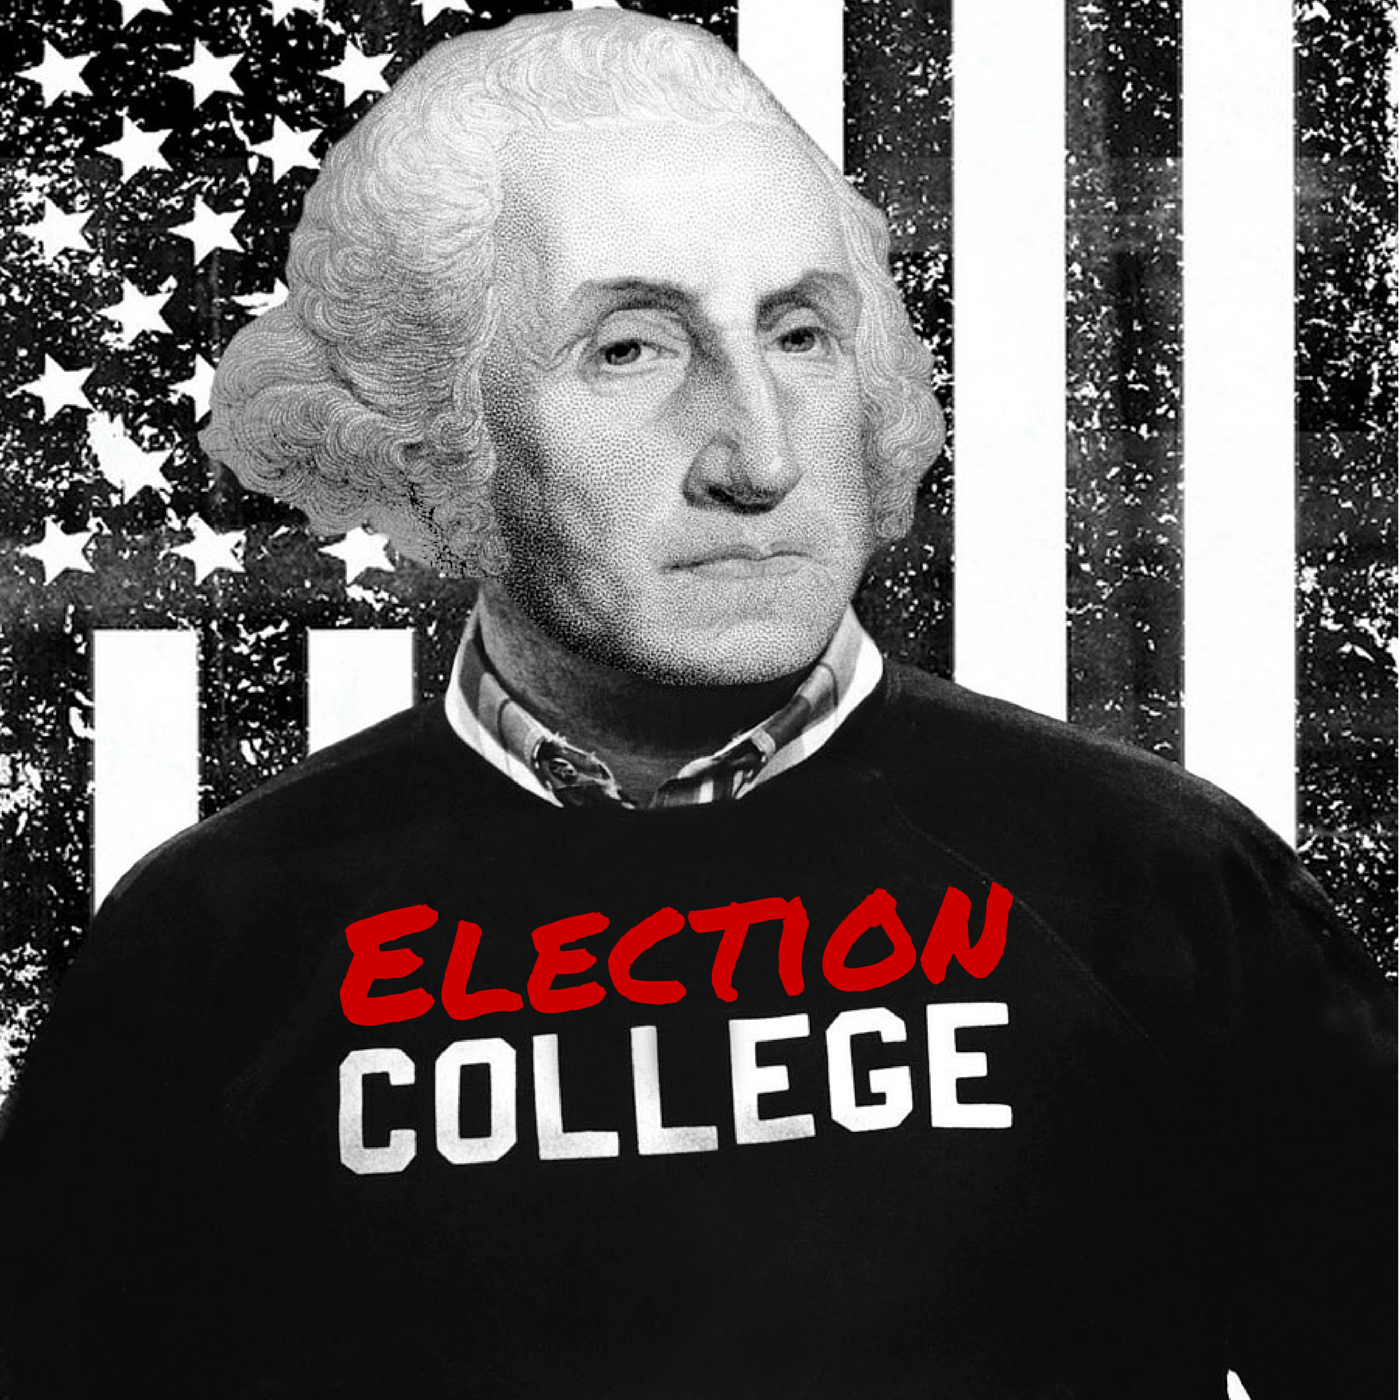 Eugene V. Debs and the Socialists | Episode #089 | Election College: United States Presidential Election History